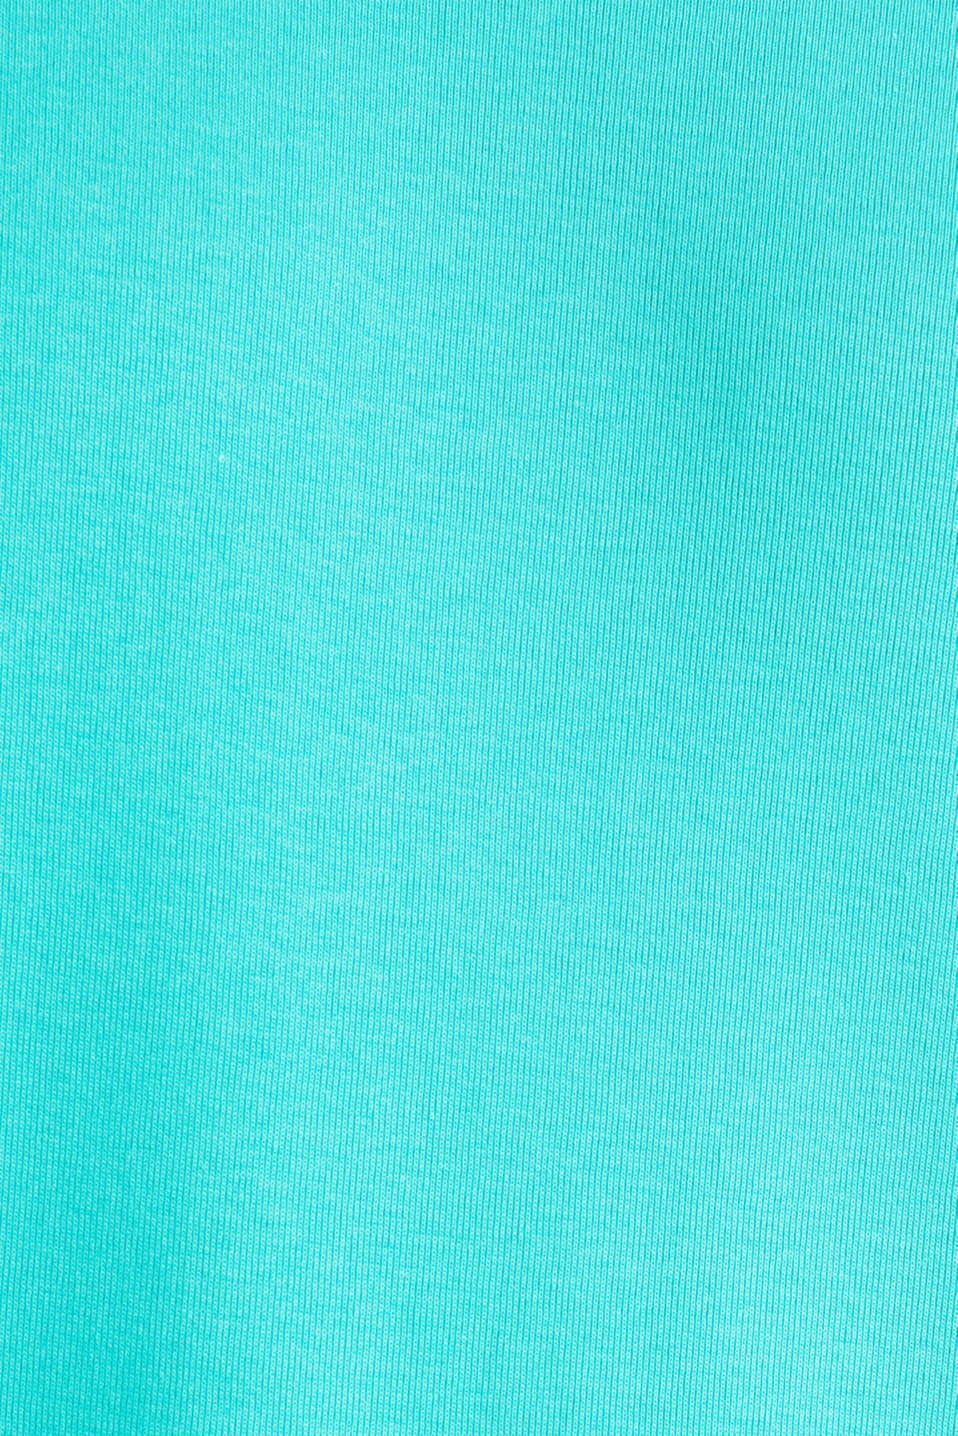 Ribbed jersey top made of 100% cotton, LIGHT TURQUOISE, detail image number 4